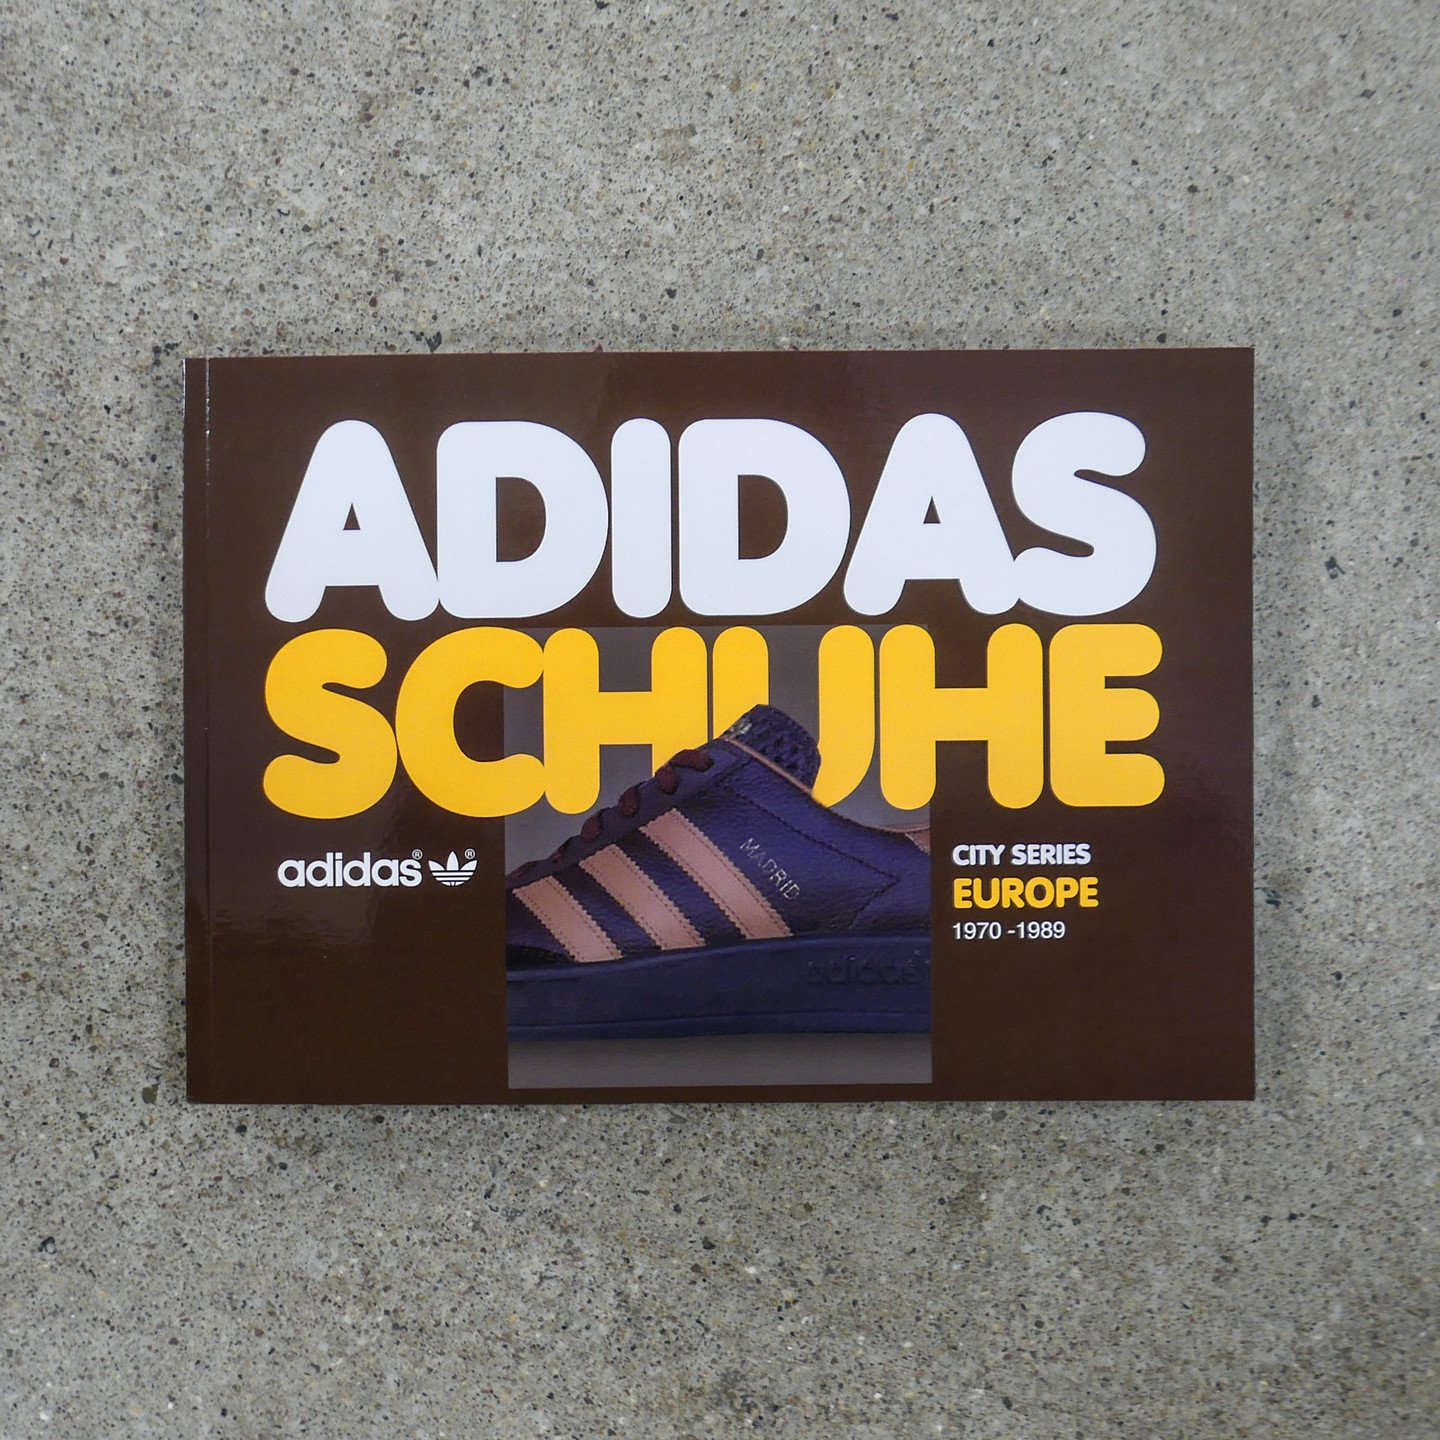 Adidas Schuhe Book 'City Series Europe' Multicolor VASB-EUR-70-89